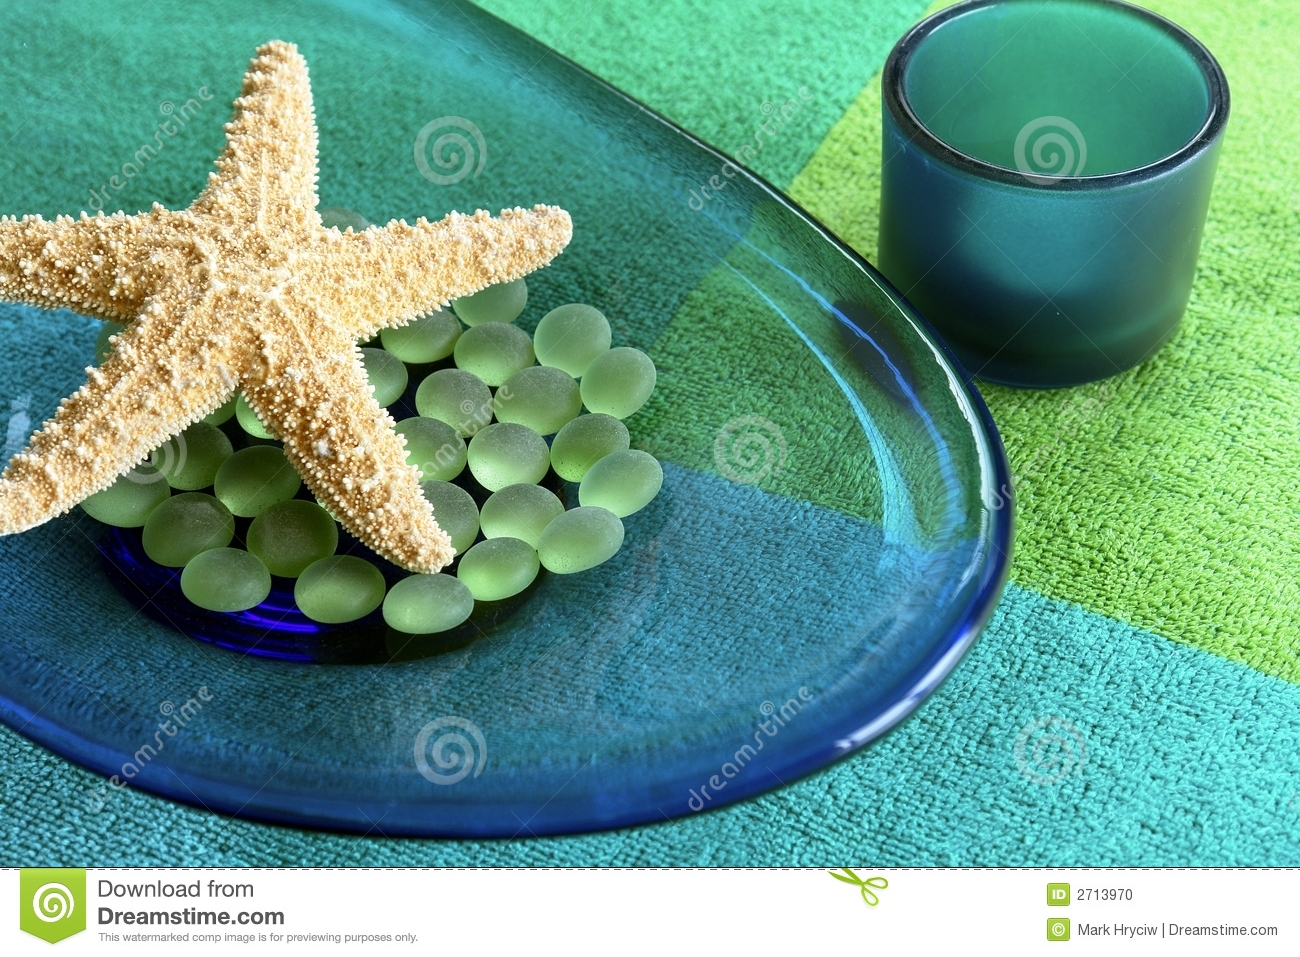 Spa Decor Stock Photo - Image: 2713970